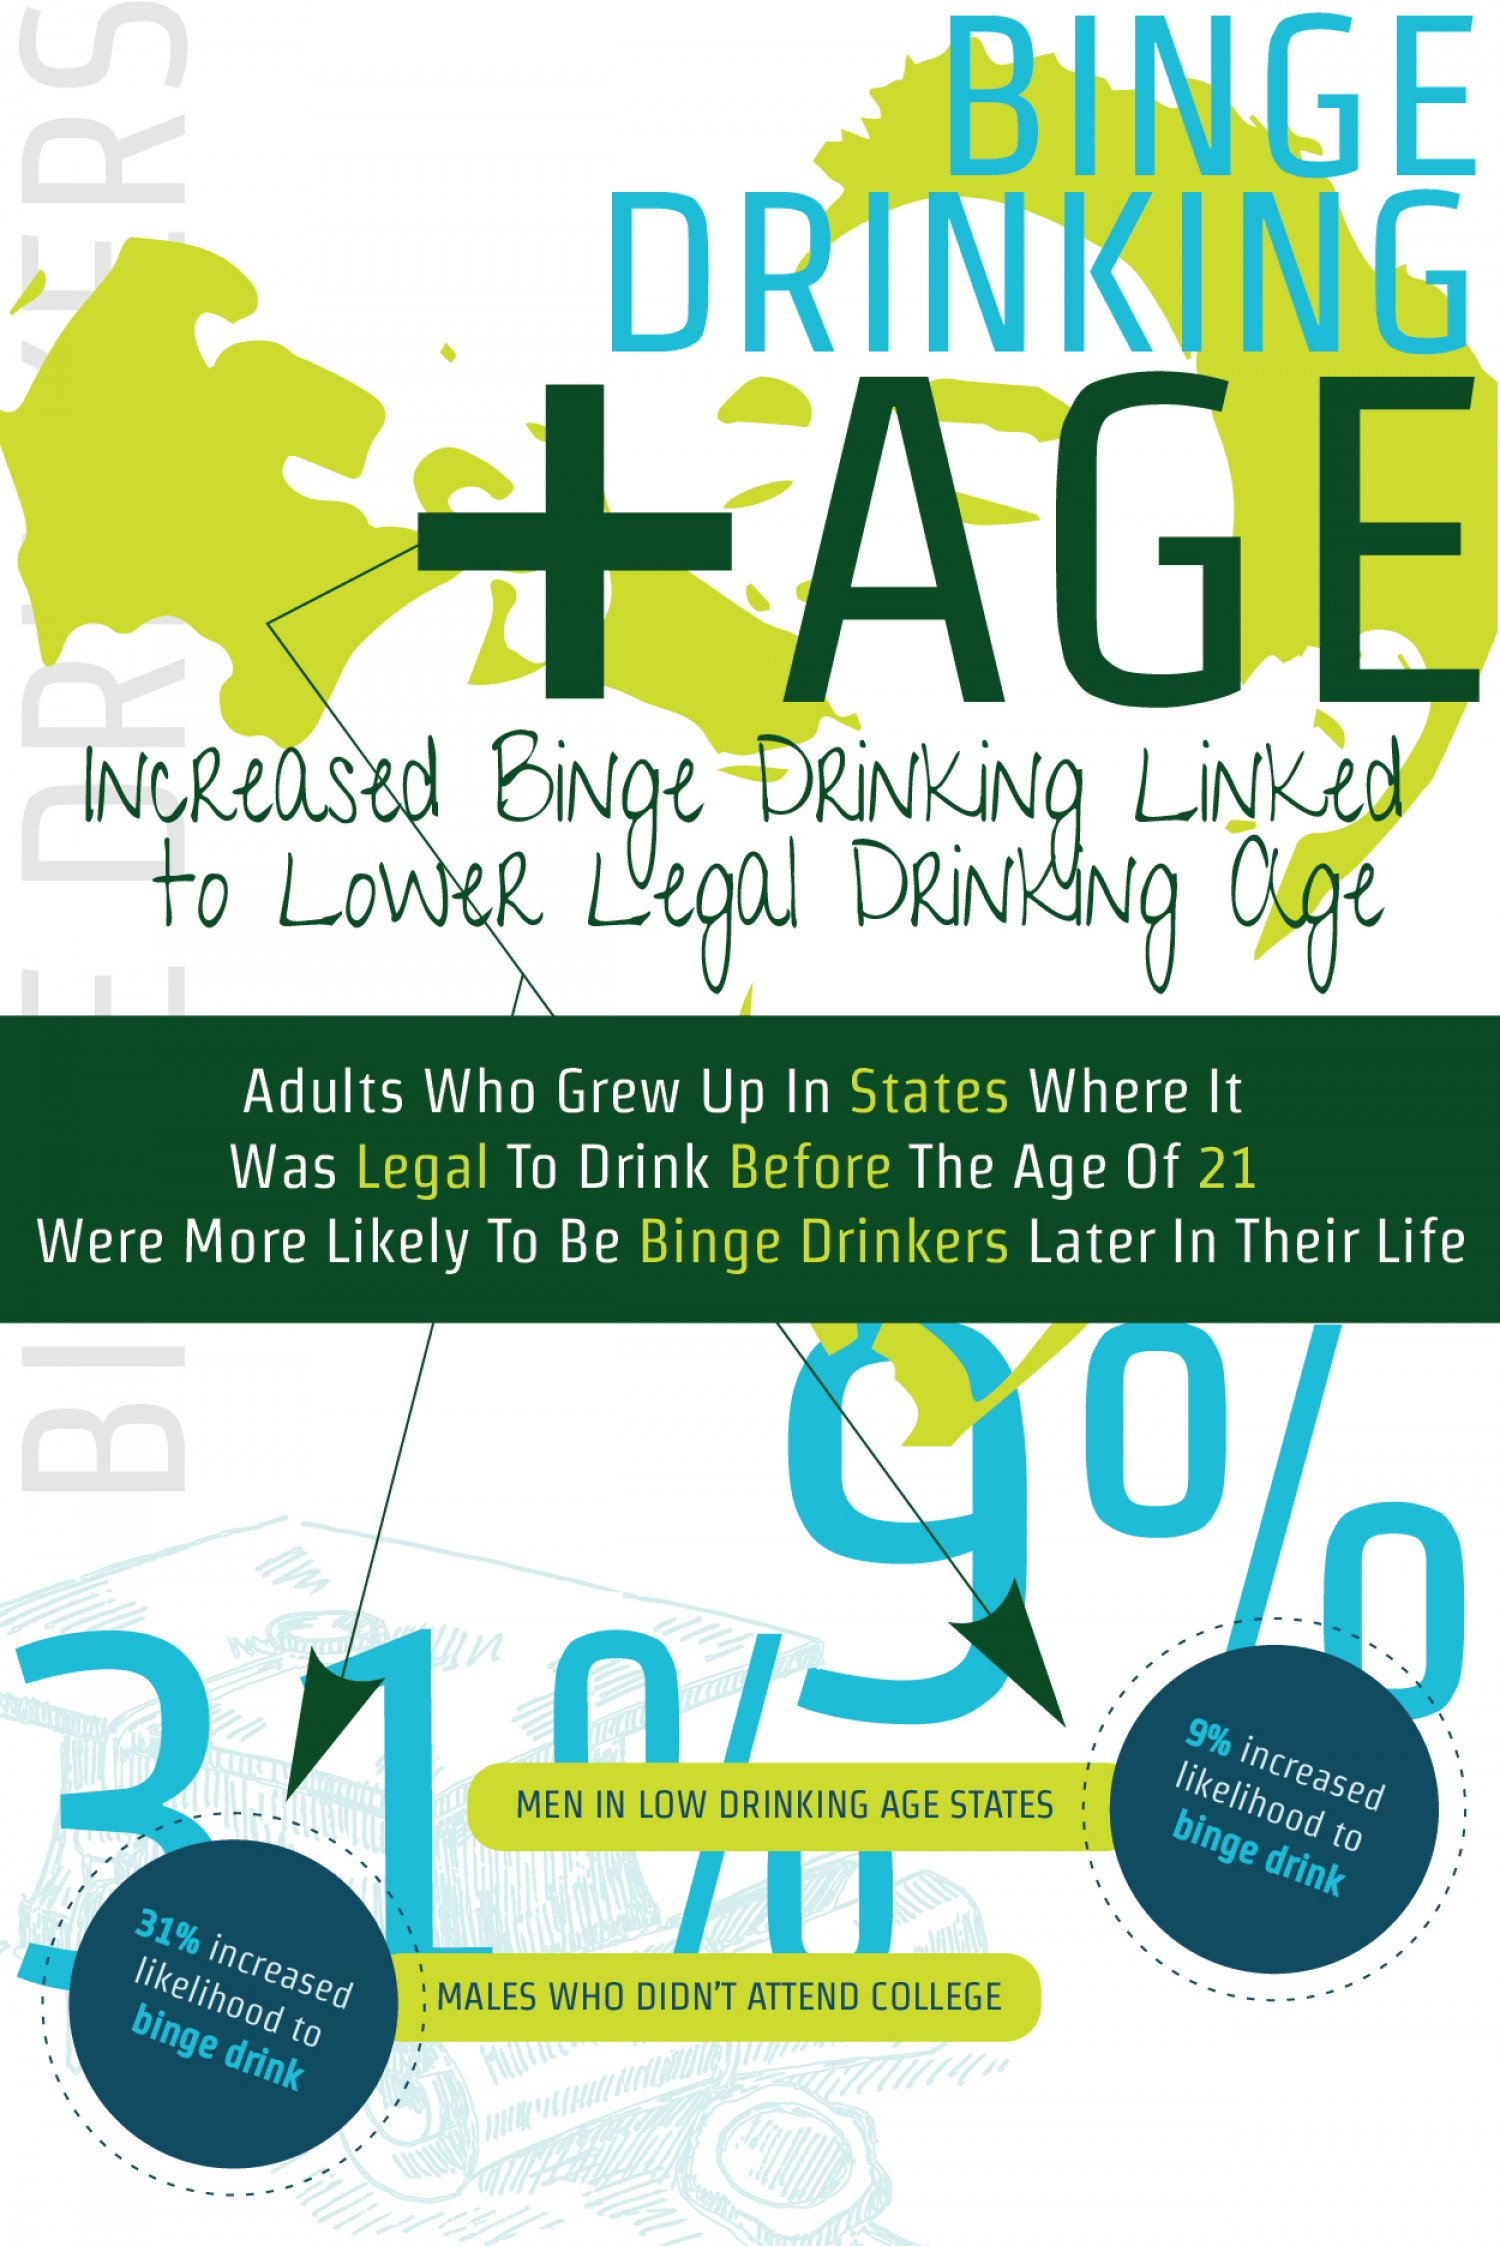 lowering the legal drinking age to 18 essay Lowering the legal drinking age 5 pages 1351 words february 2015 saved essays save your essays here so you can locate them quickly.